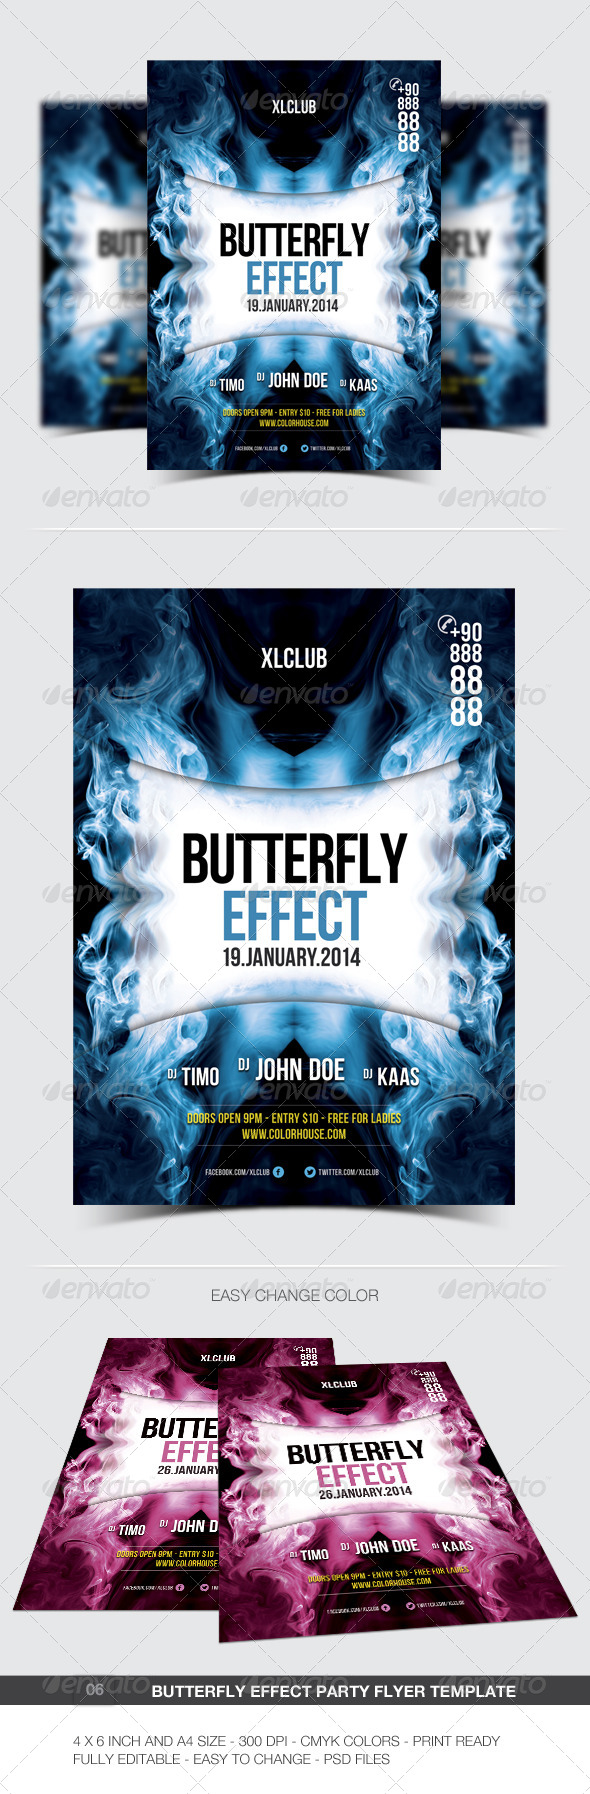 GraphicRiver Butterfly Effect Party Flyer Poster 06 6488516